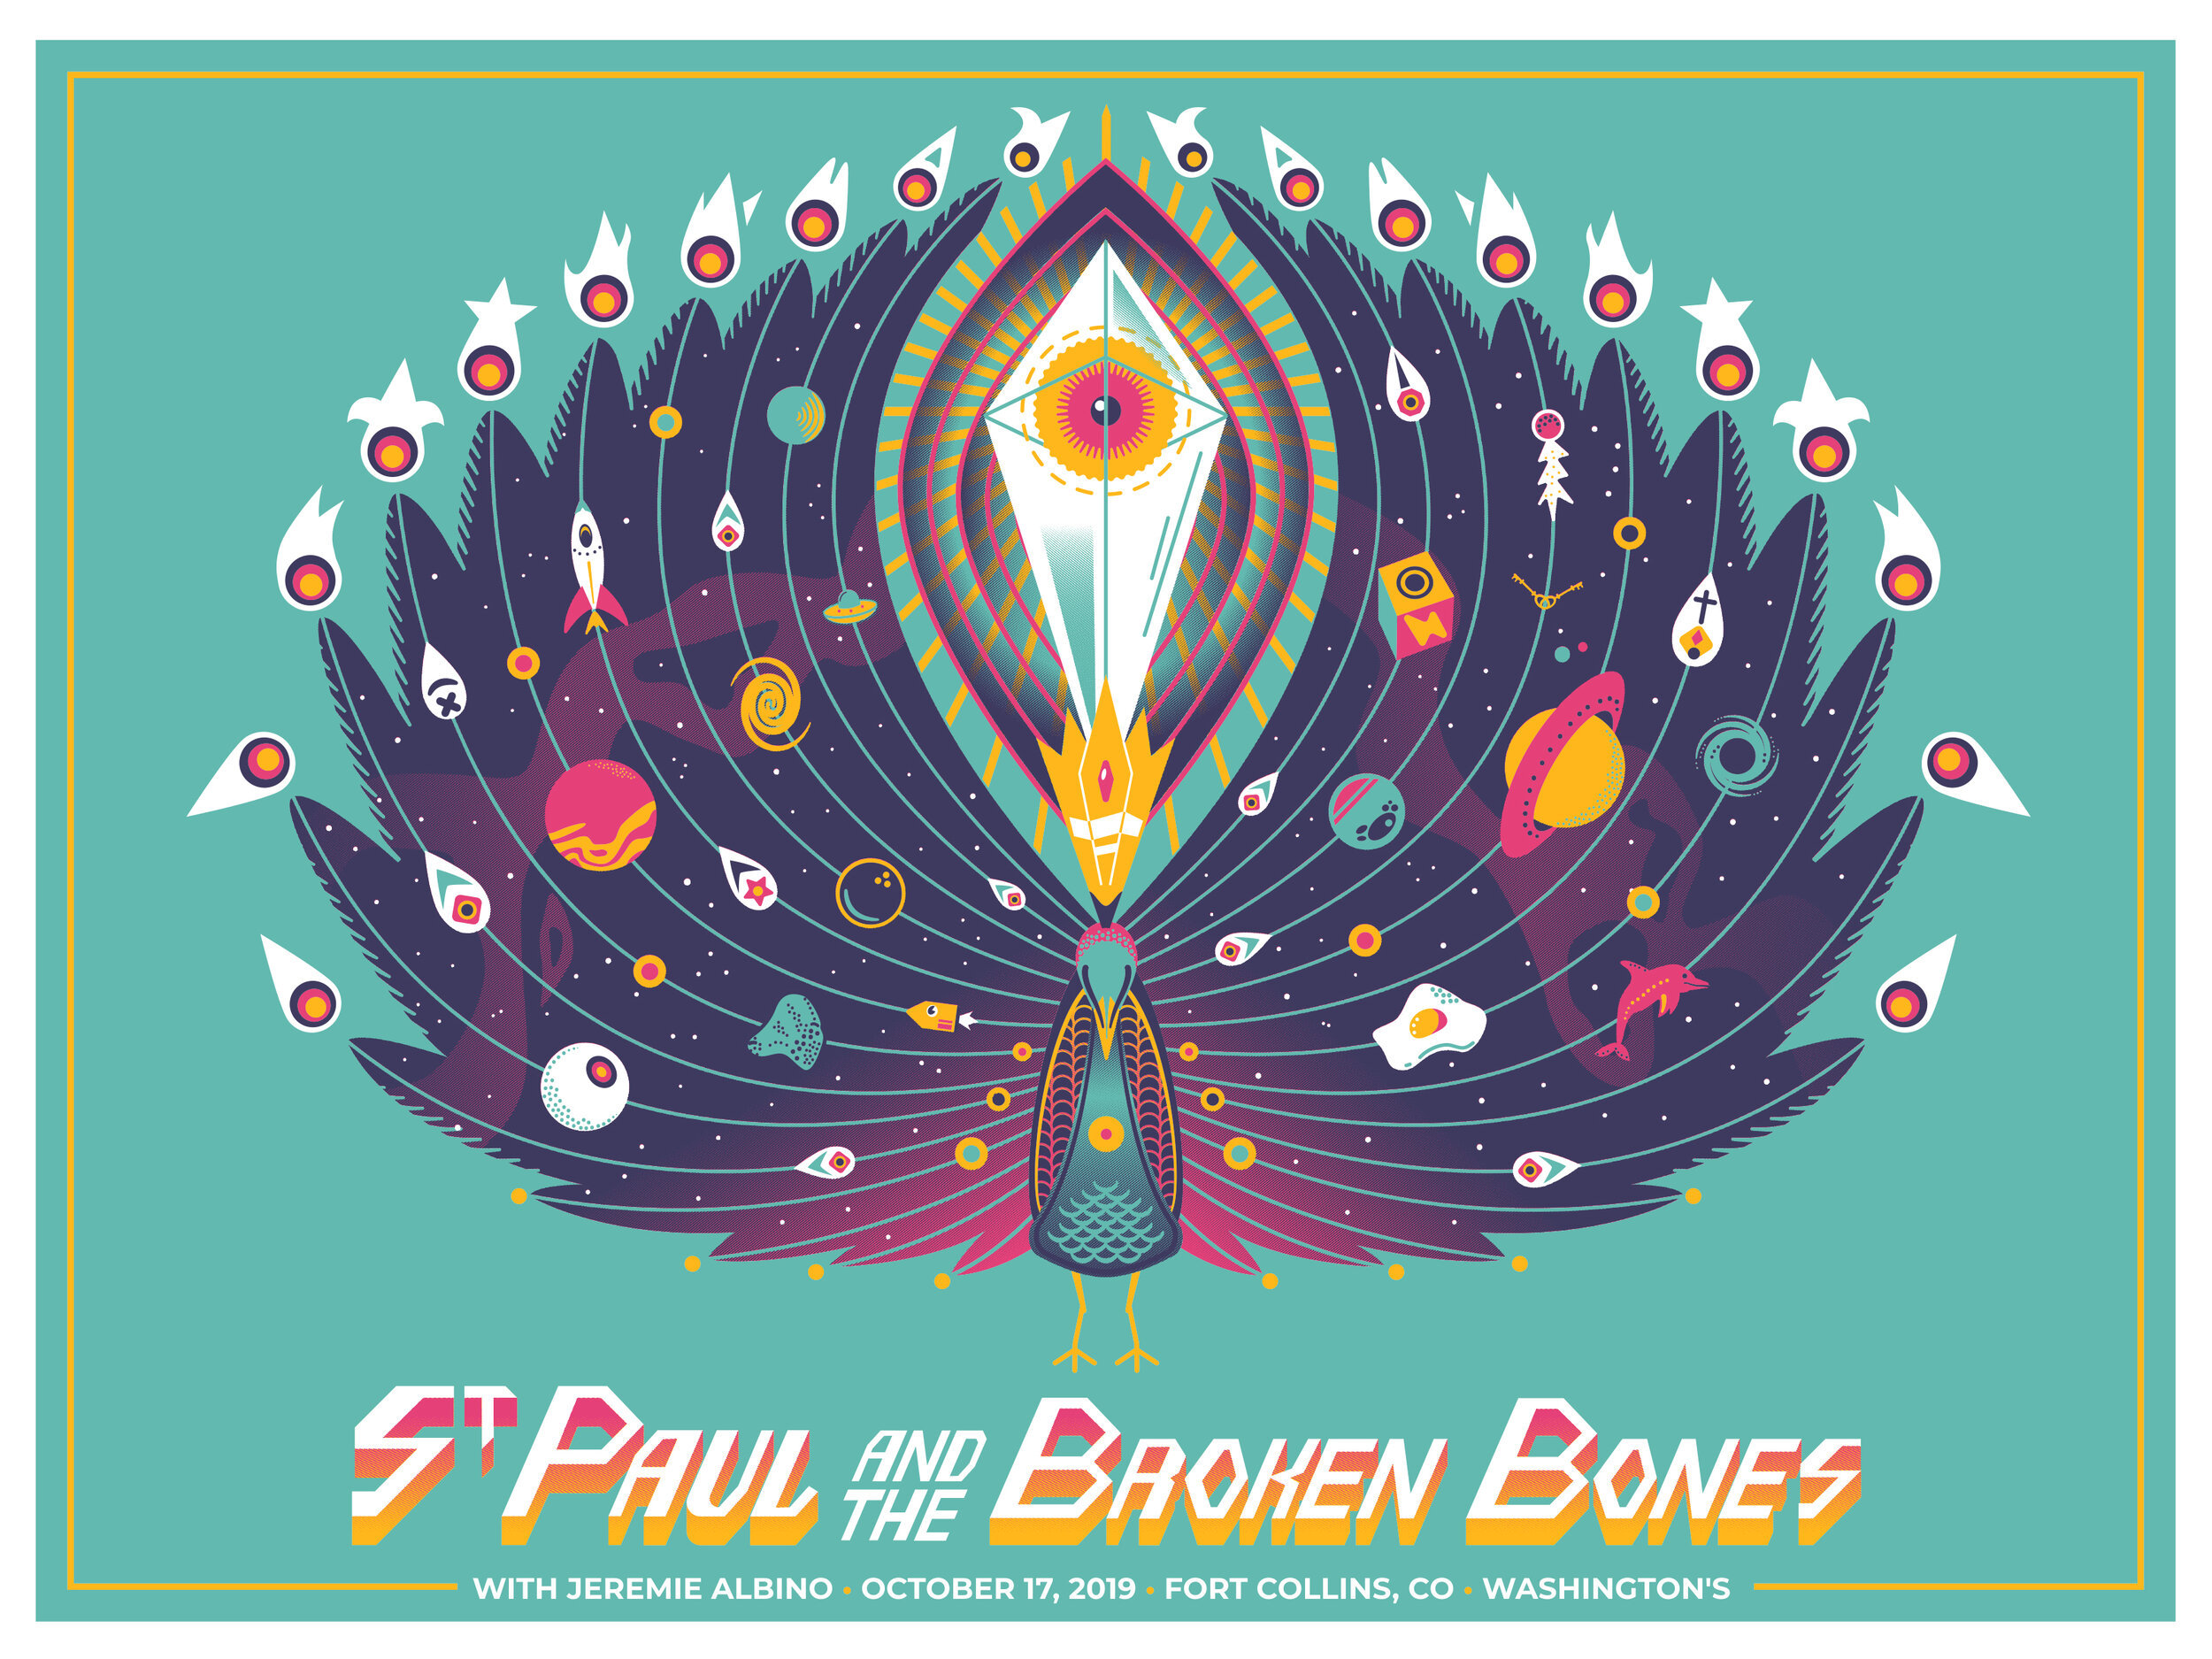 Limited Edition St. Paul and the Broken Bones Poster